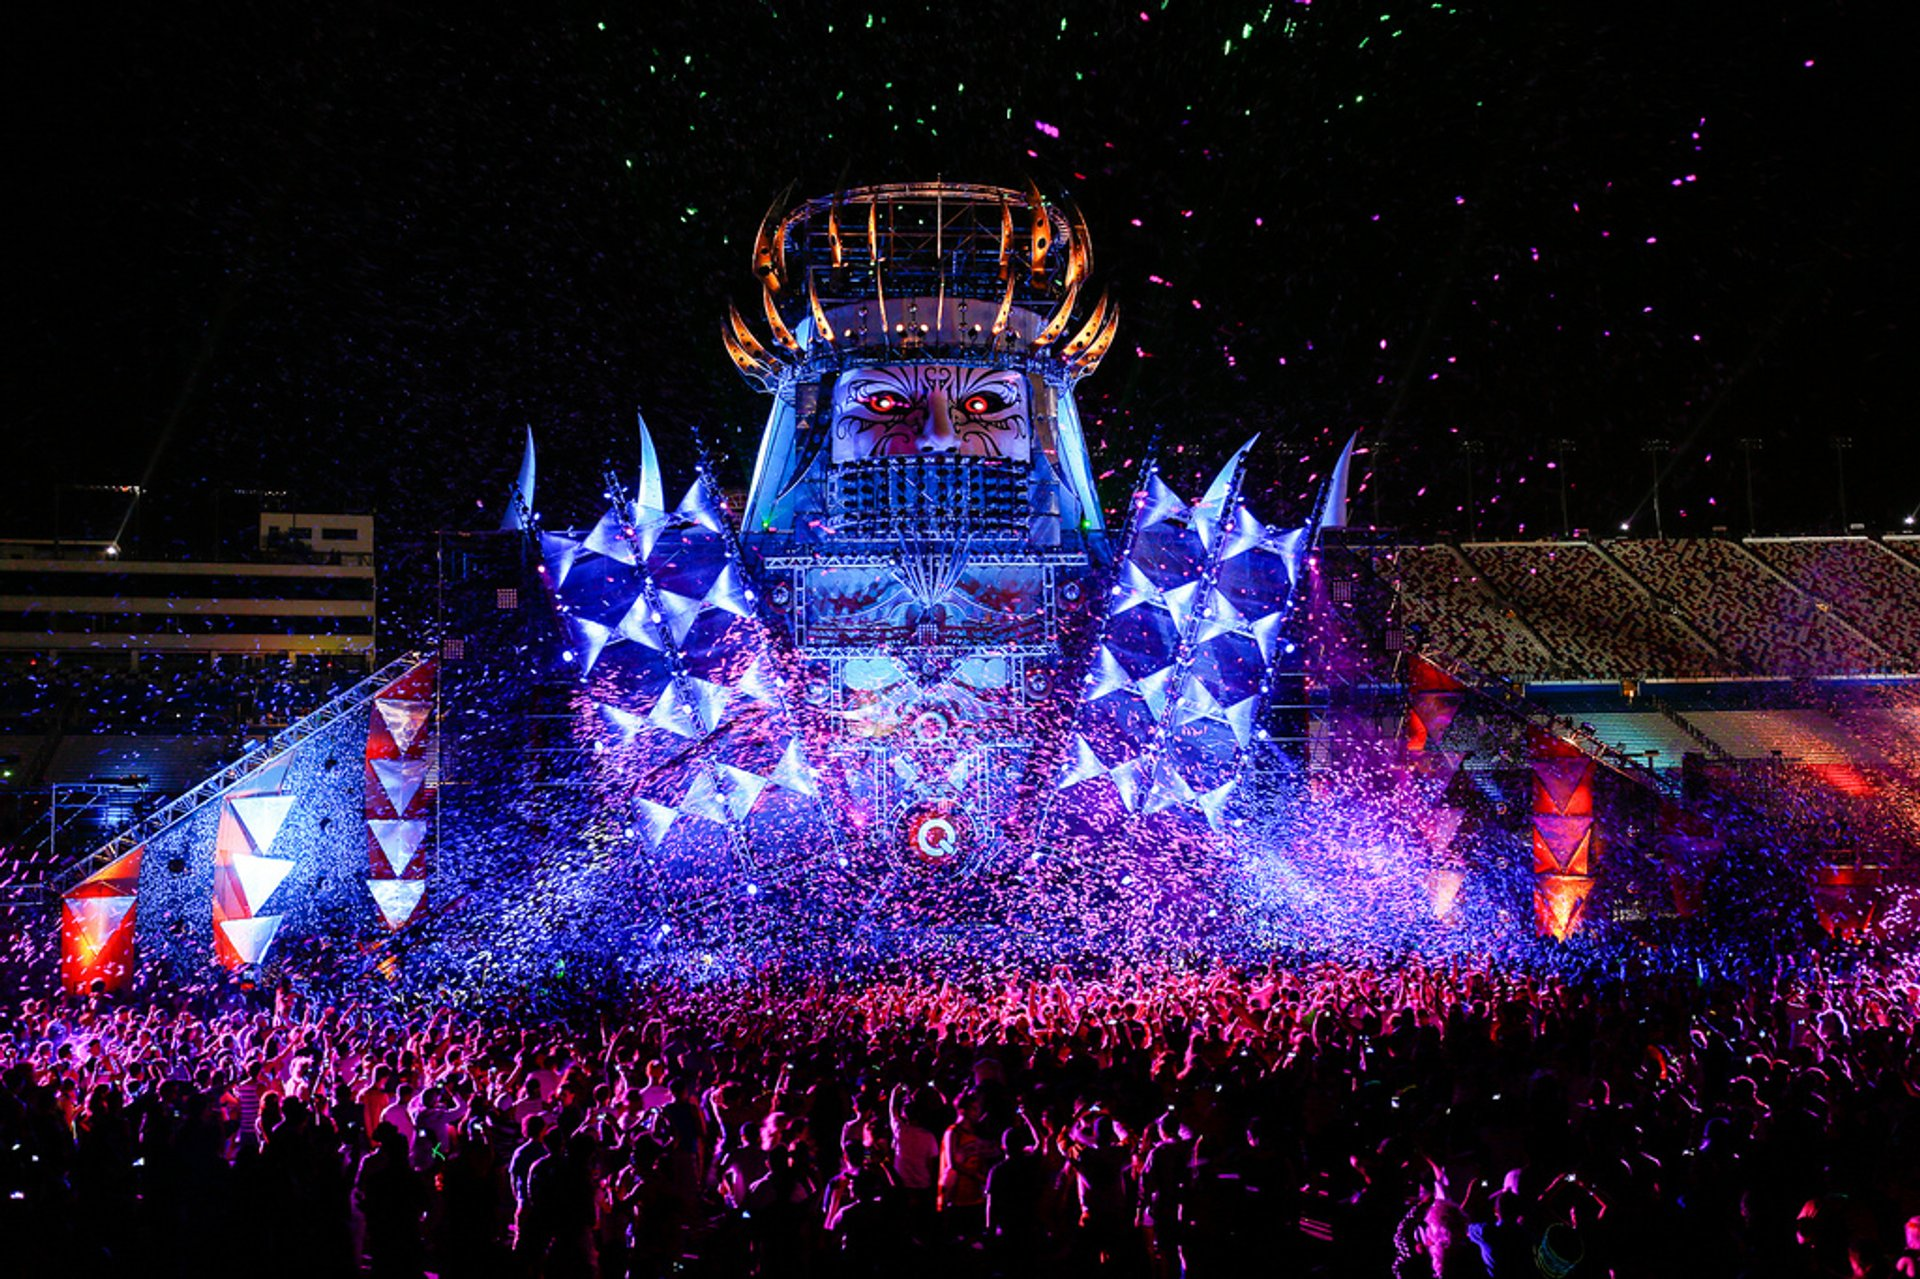 EDC Las Vegas (Electric Daisy Carnival) in Las Vegas 2019 - Best Time